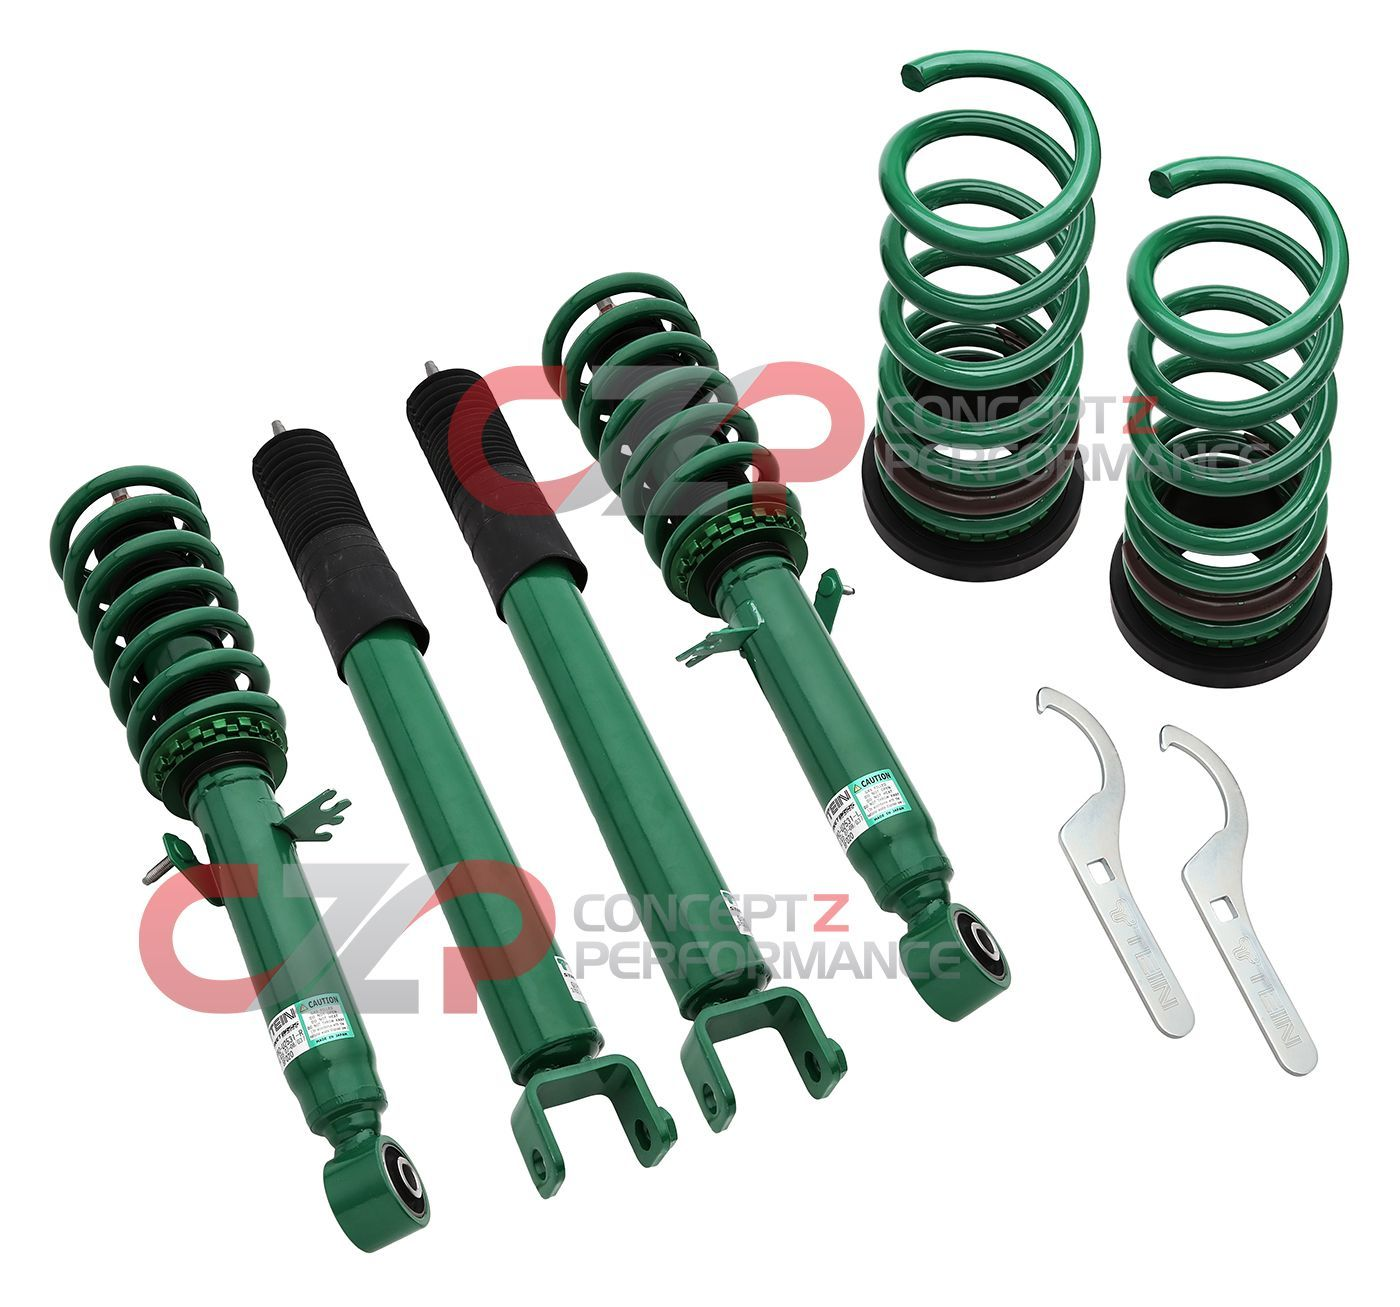 Tein Street Basis Z Coilovers - Nissan 370Z / Infiniti G35, G37, Q40, Q60 RWD - IN STOCK!!!